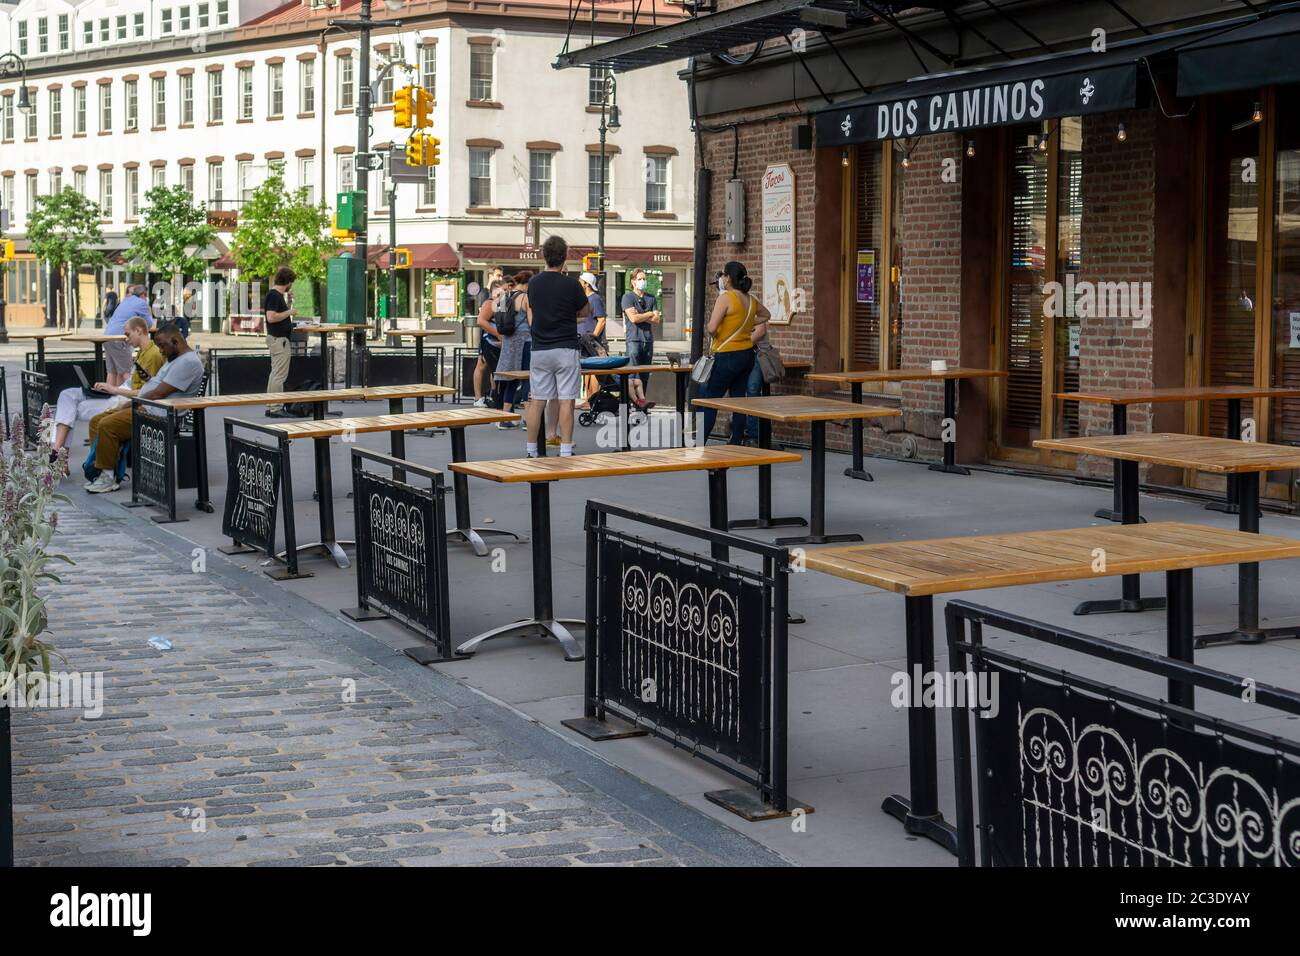 In anticipation of Phase Two of the reopening Dos Caminos in the Meatpacking District in New York sets out tables complying with social distancing protocols, seen on Thursday, June 18, 2020. Phase Two takes effect June 22 in New York City and will allow some outdoor dining.  (© Richard B. Levine) Stock Photo